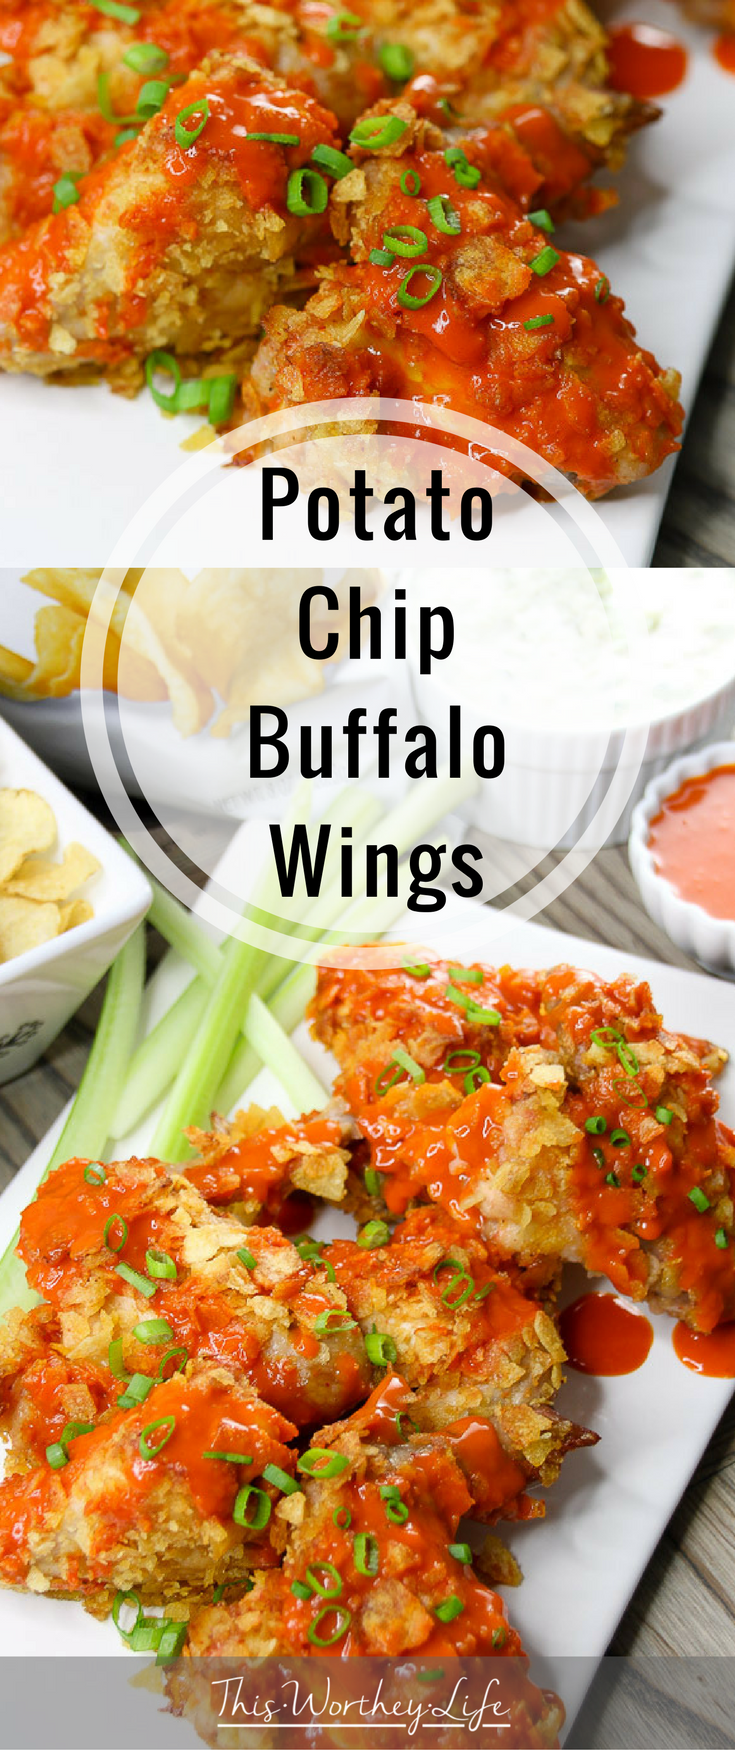 Get ready for game day with these easy appetizer recipe ideas. Try our buffalo wings with a potato chip coat, and our spinach & artichoke dip with cheesy toasted pretzel pieces. Both game day crowd pleasers to include in your upcoming party.